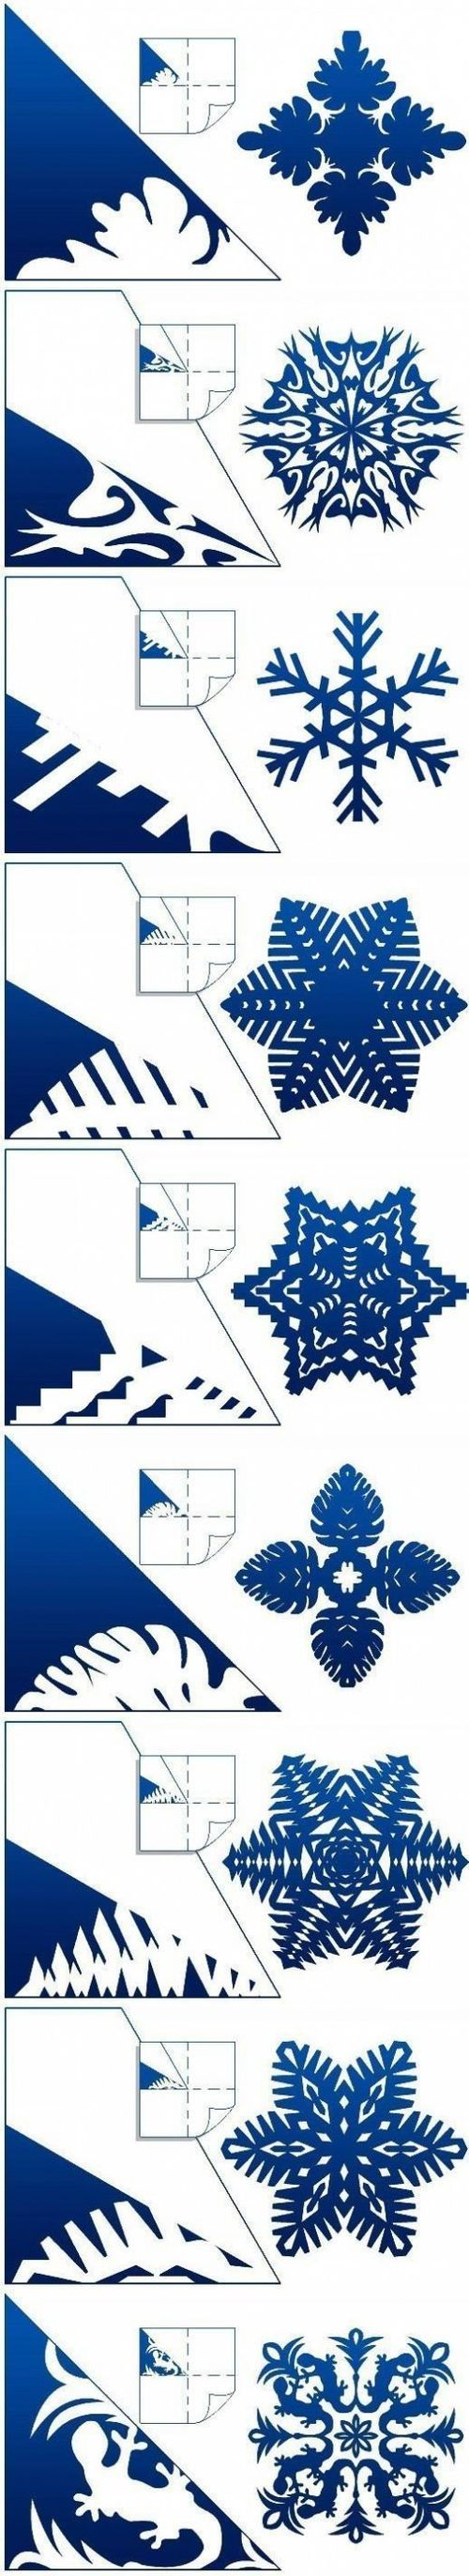 How to make Schemes of Paper Snowflakes step by step DIY tutorial instructions / How To Instructions